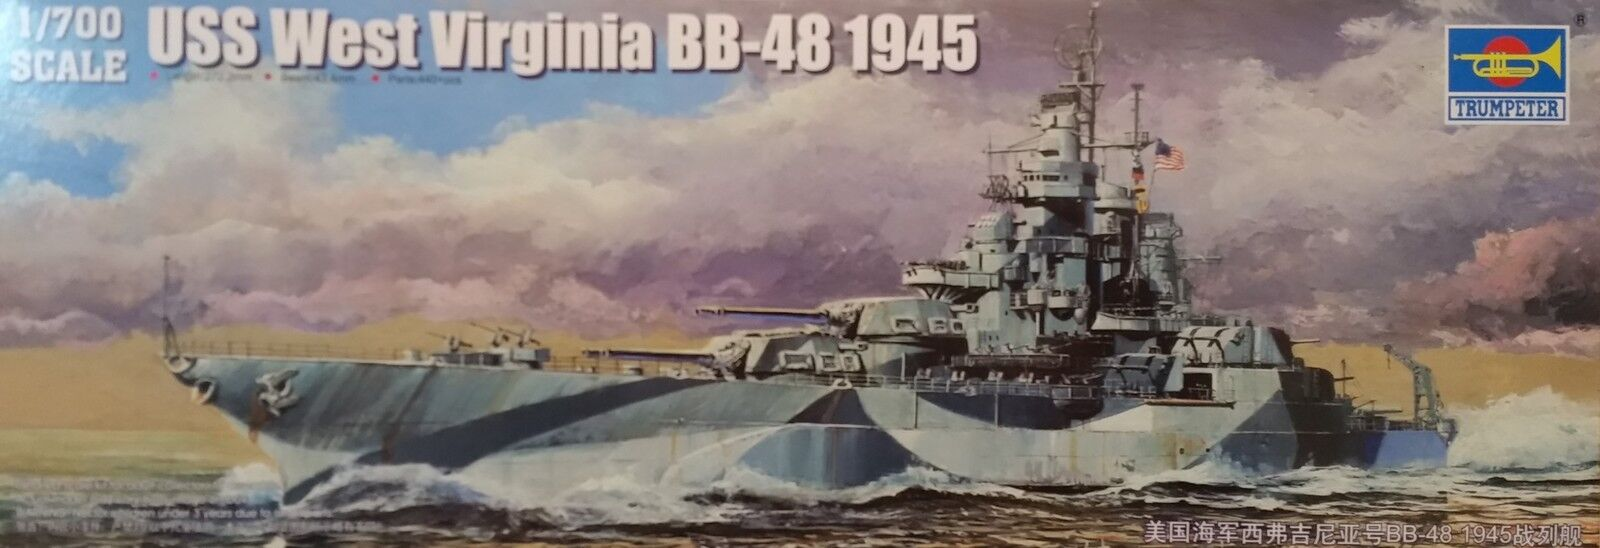 TRUMPETER® 05772 USS West West West Virginia BB-48 1945 in 1 700  | Moderne Muster  8a613d